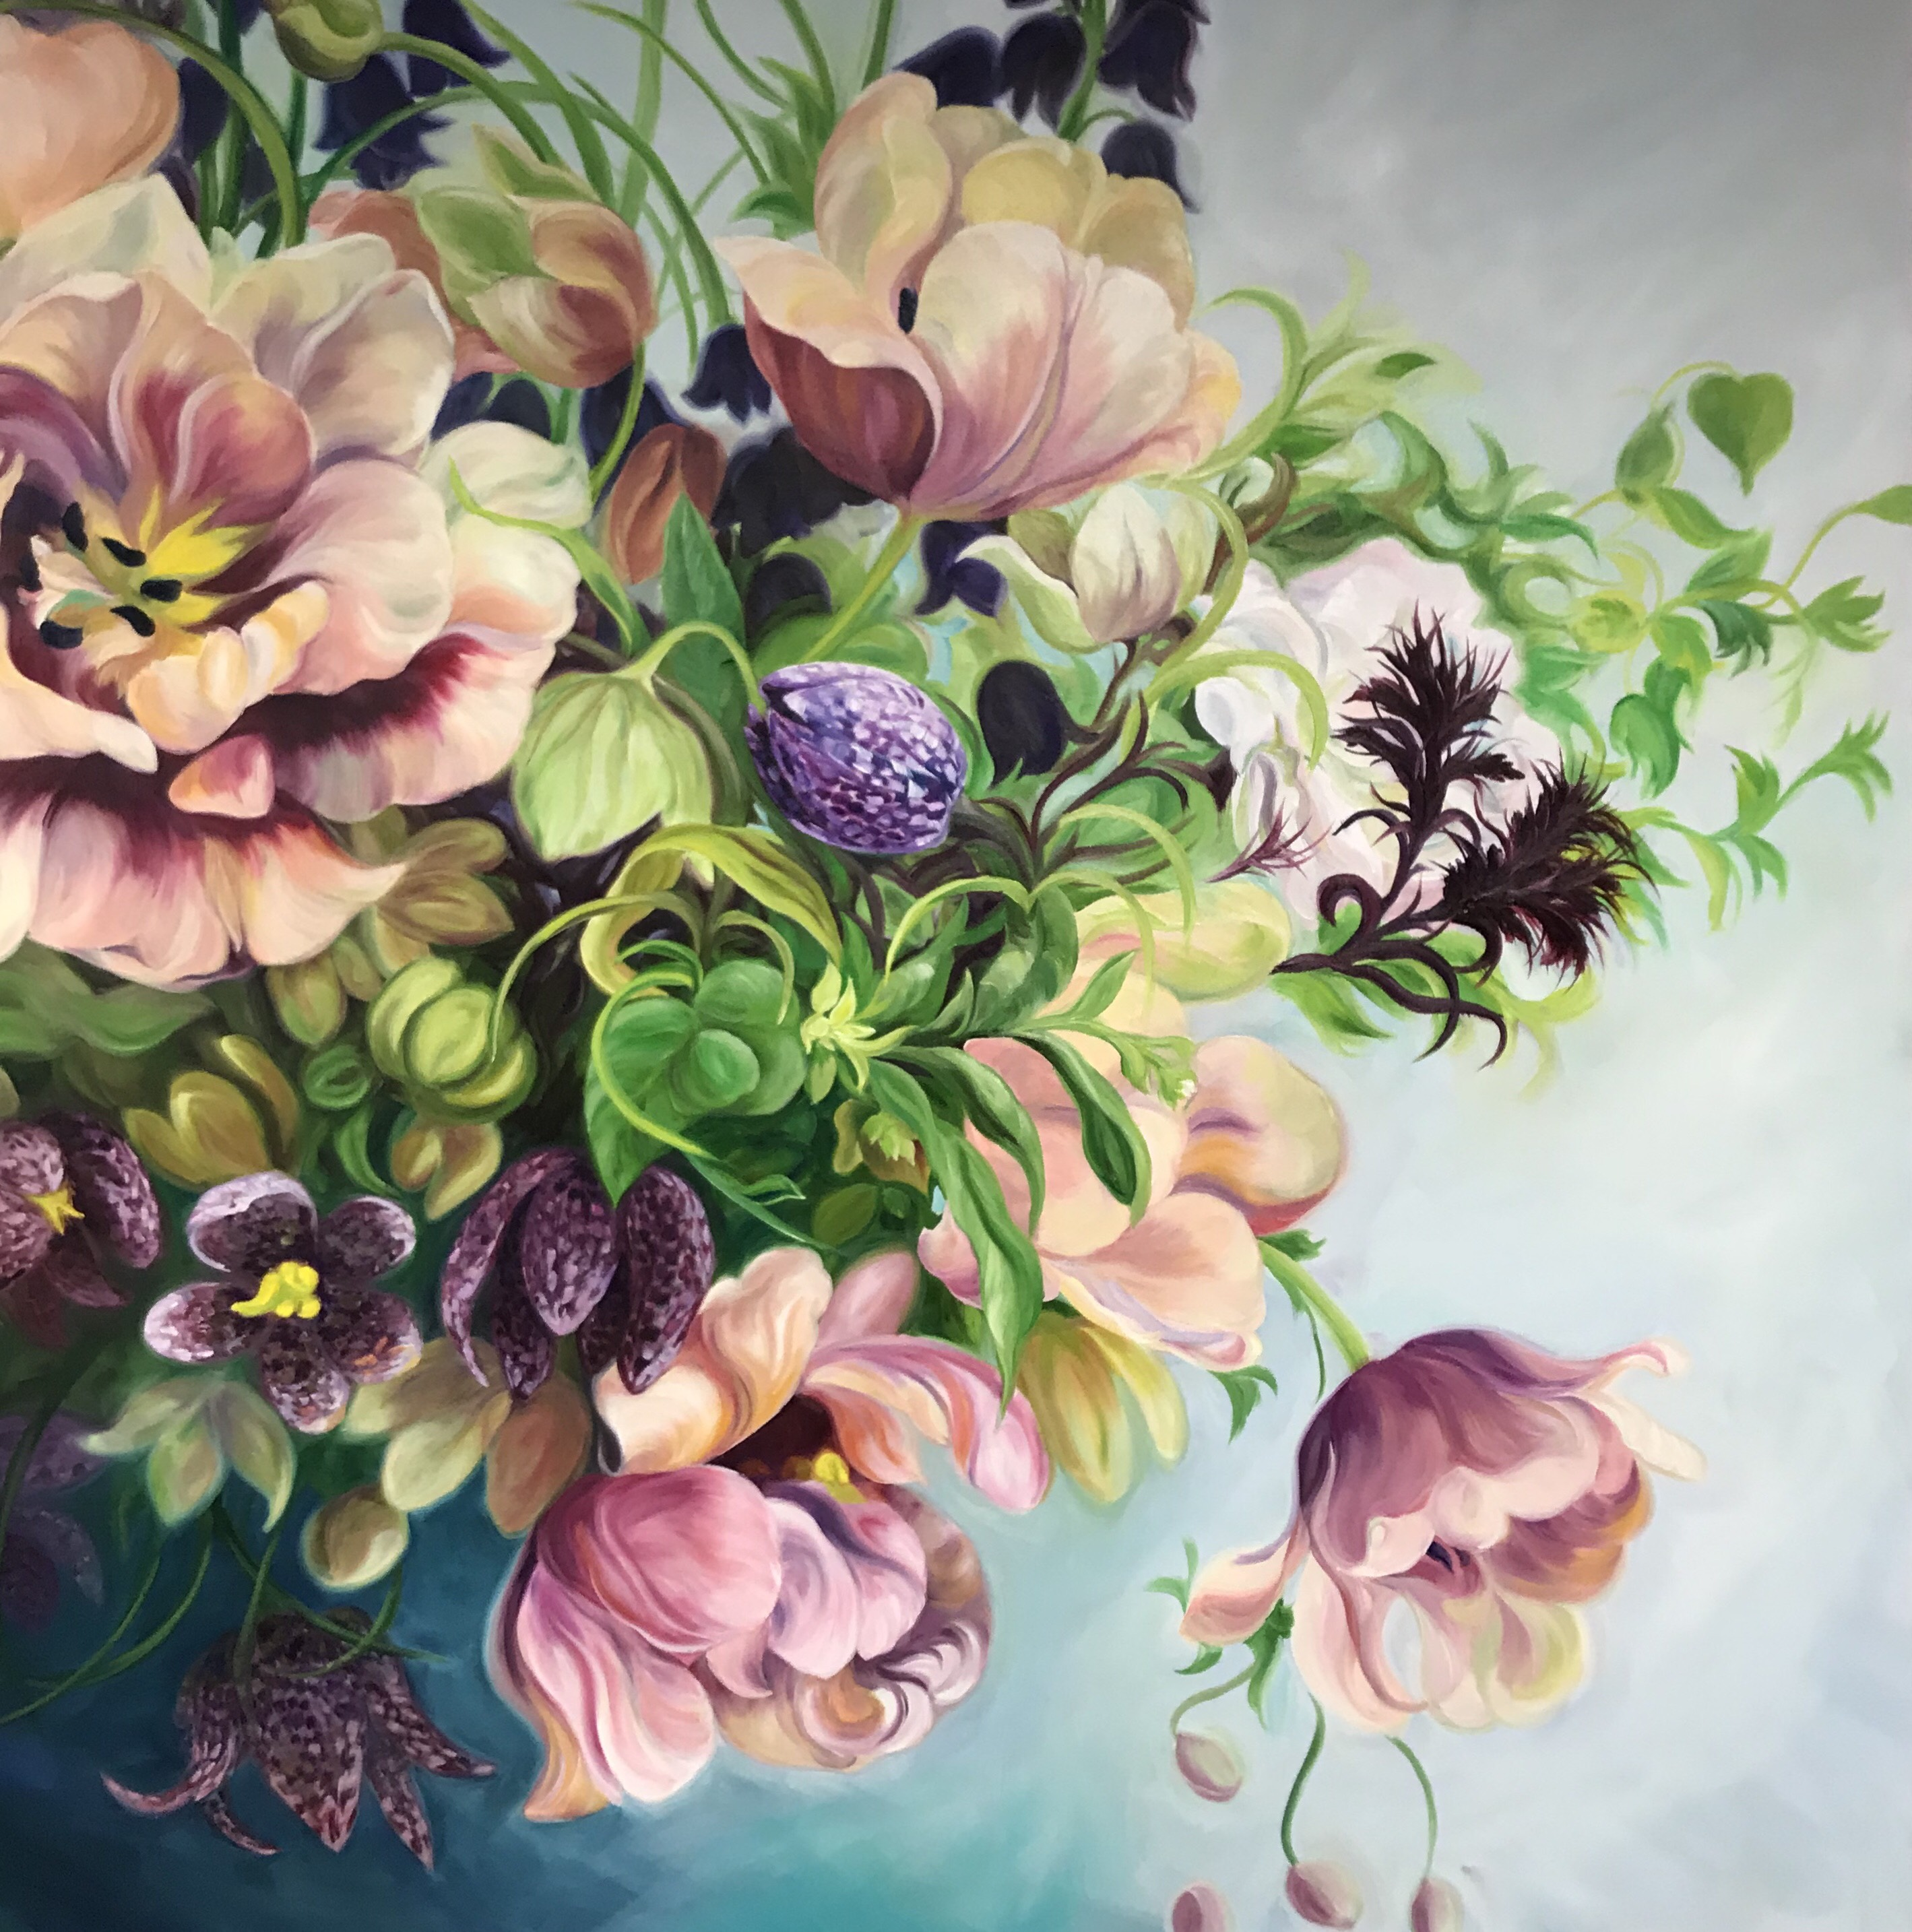 Case Study Flower Painter Anita Nowinska On Leveraging